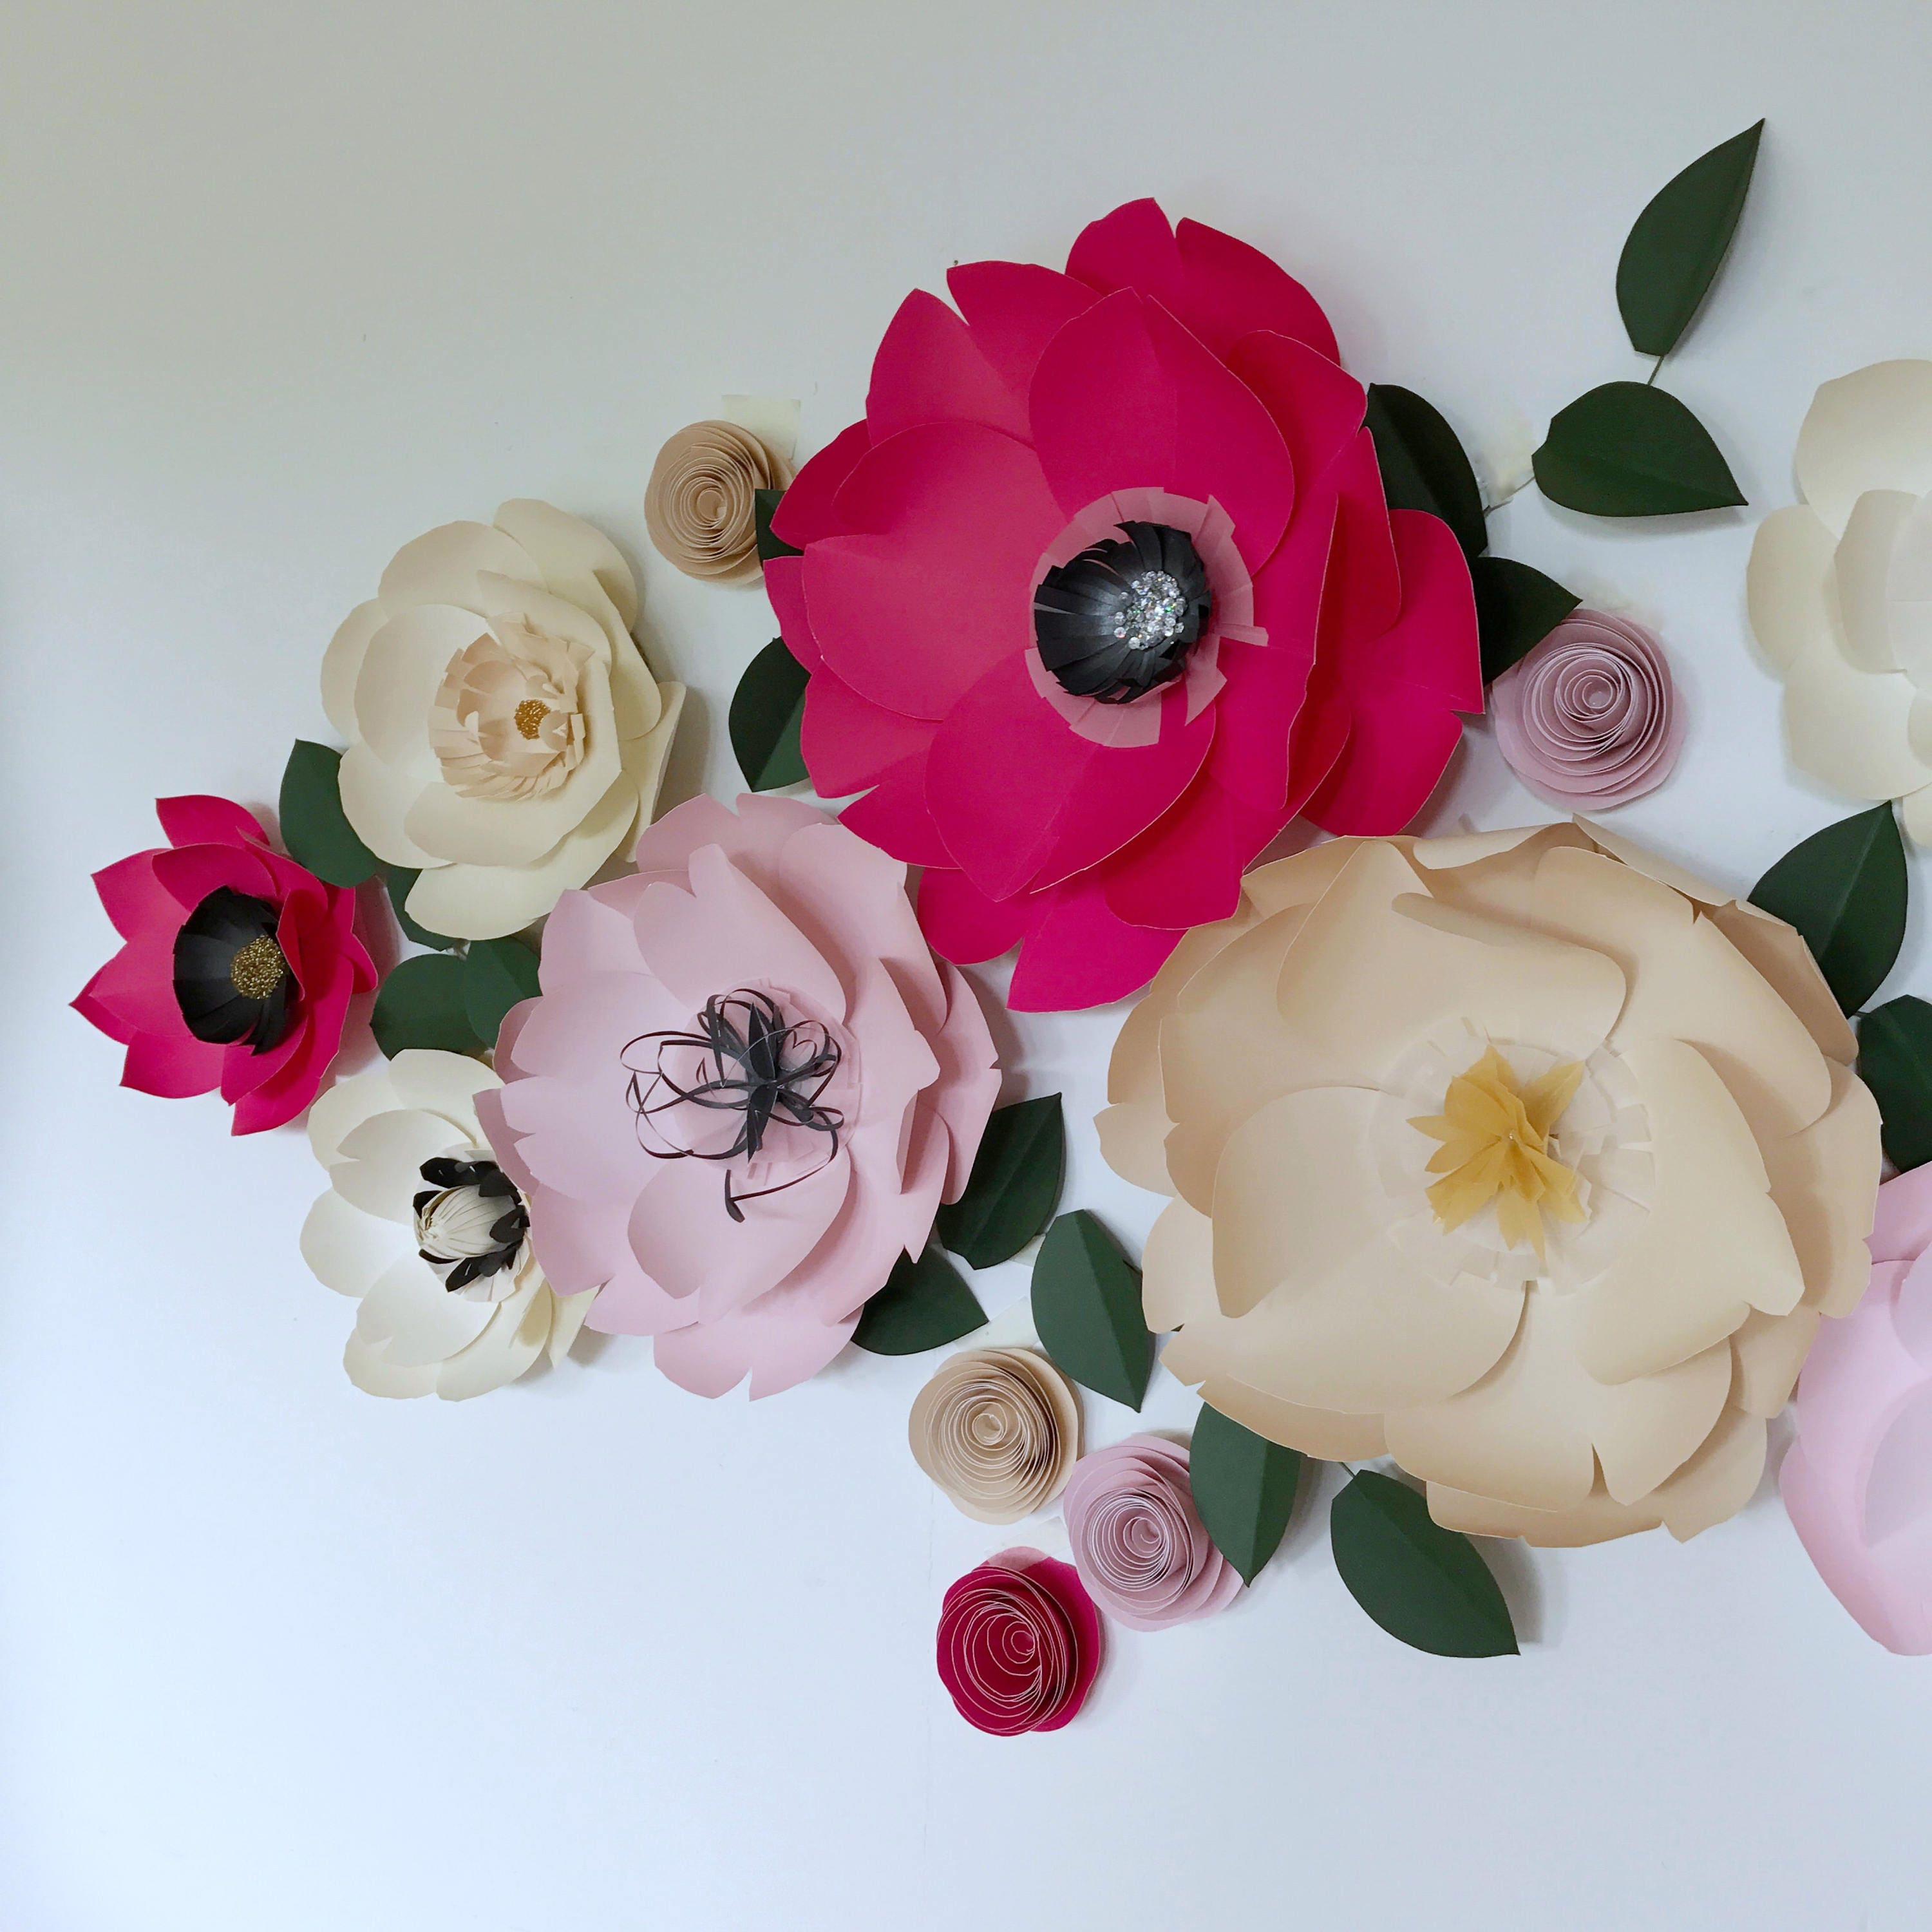 Large paper flowers bright pink flower nursery wall decor giant large paper flowers bright pink flower nursery wall decor giant cream paper flowers party backdrop wedding shoot newborn photography props mightylinksfo Choice Image